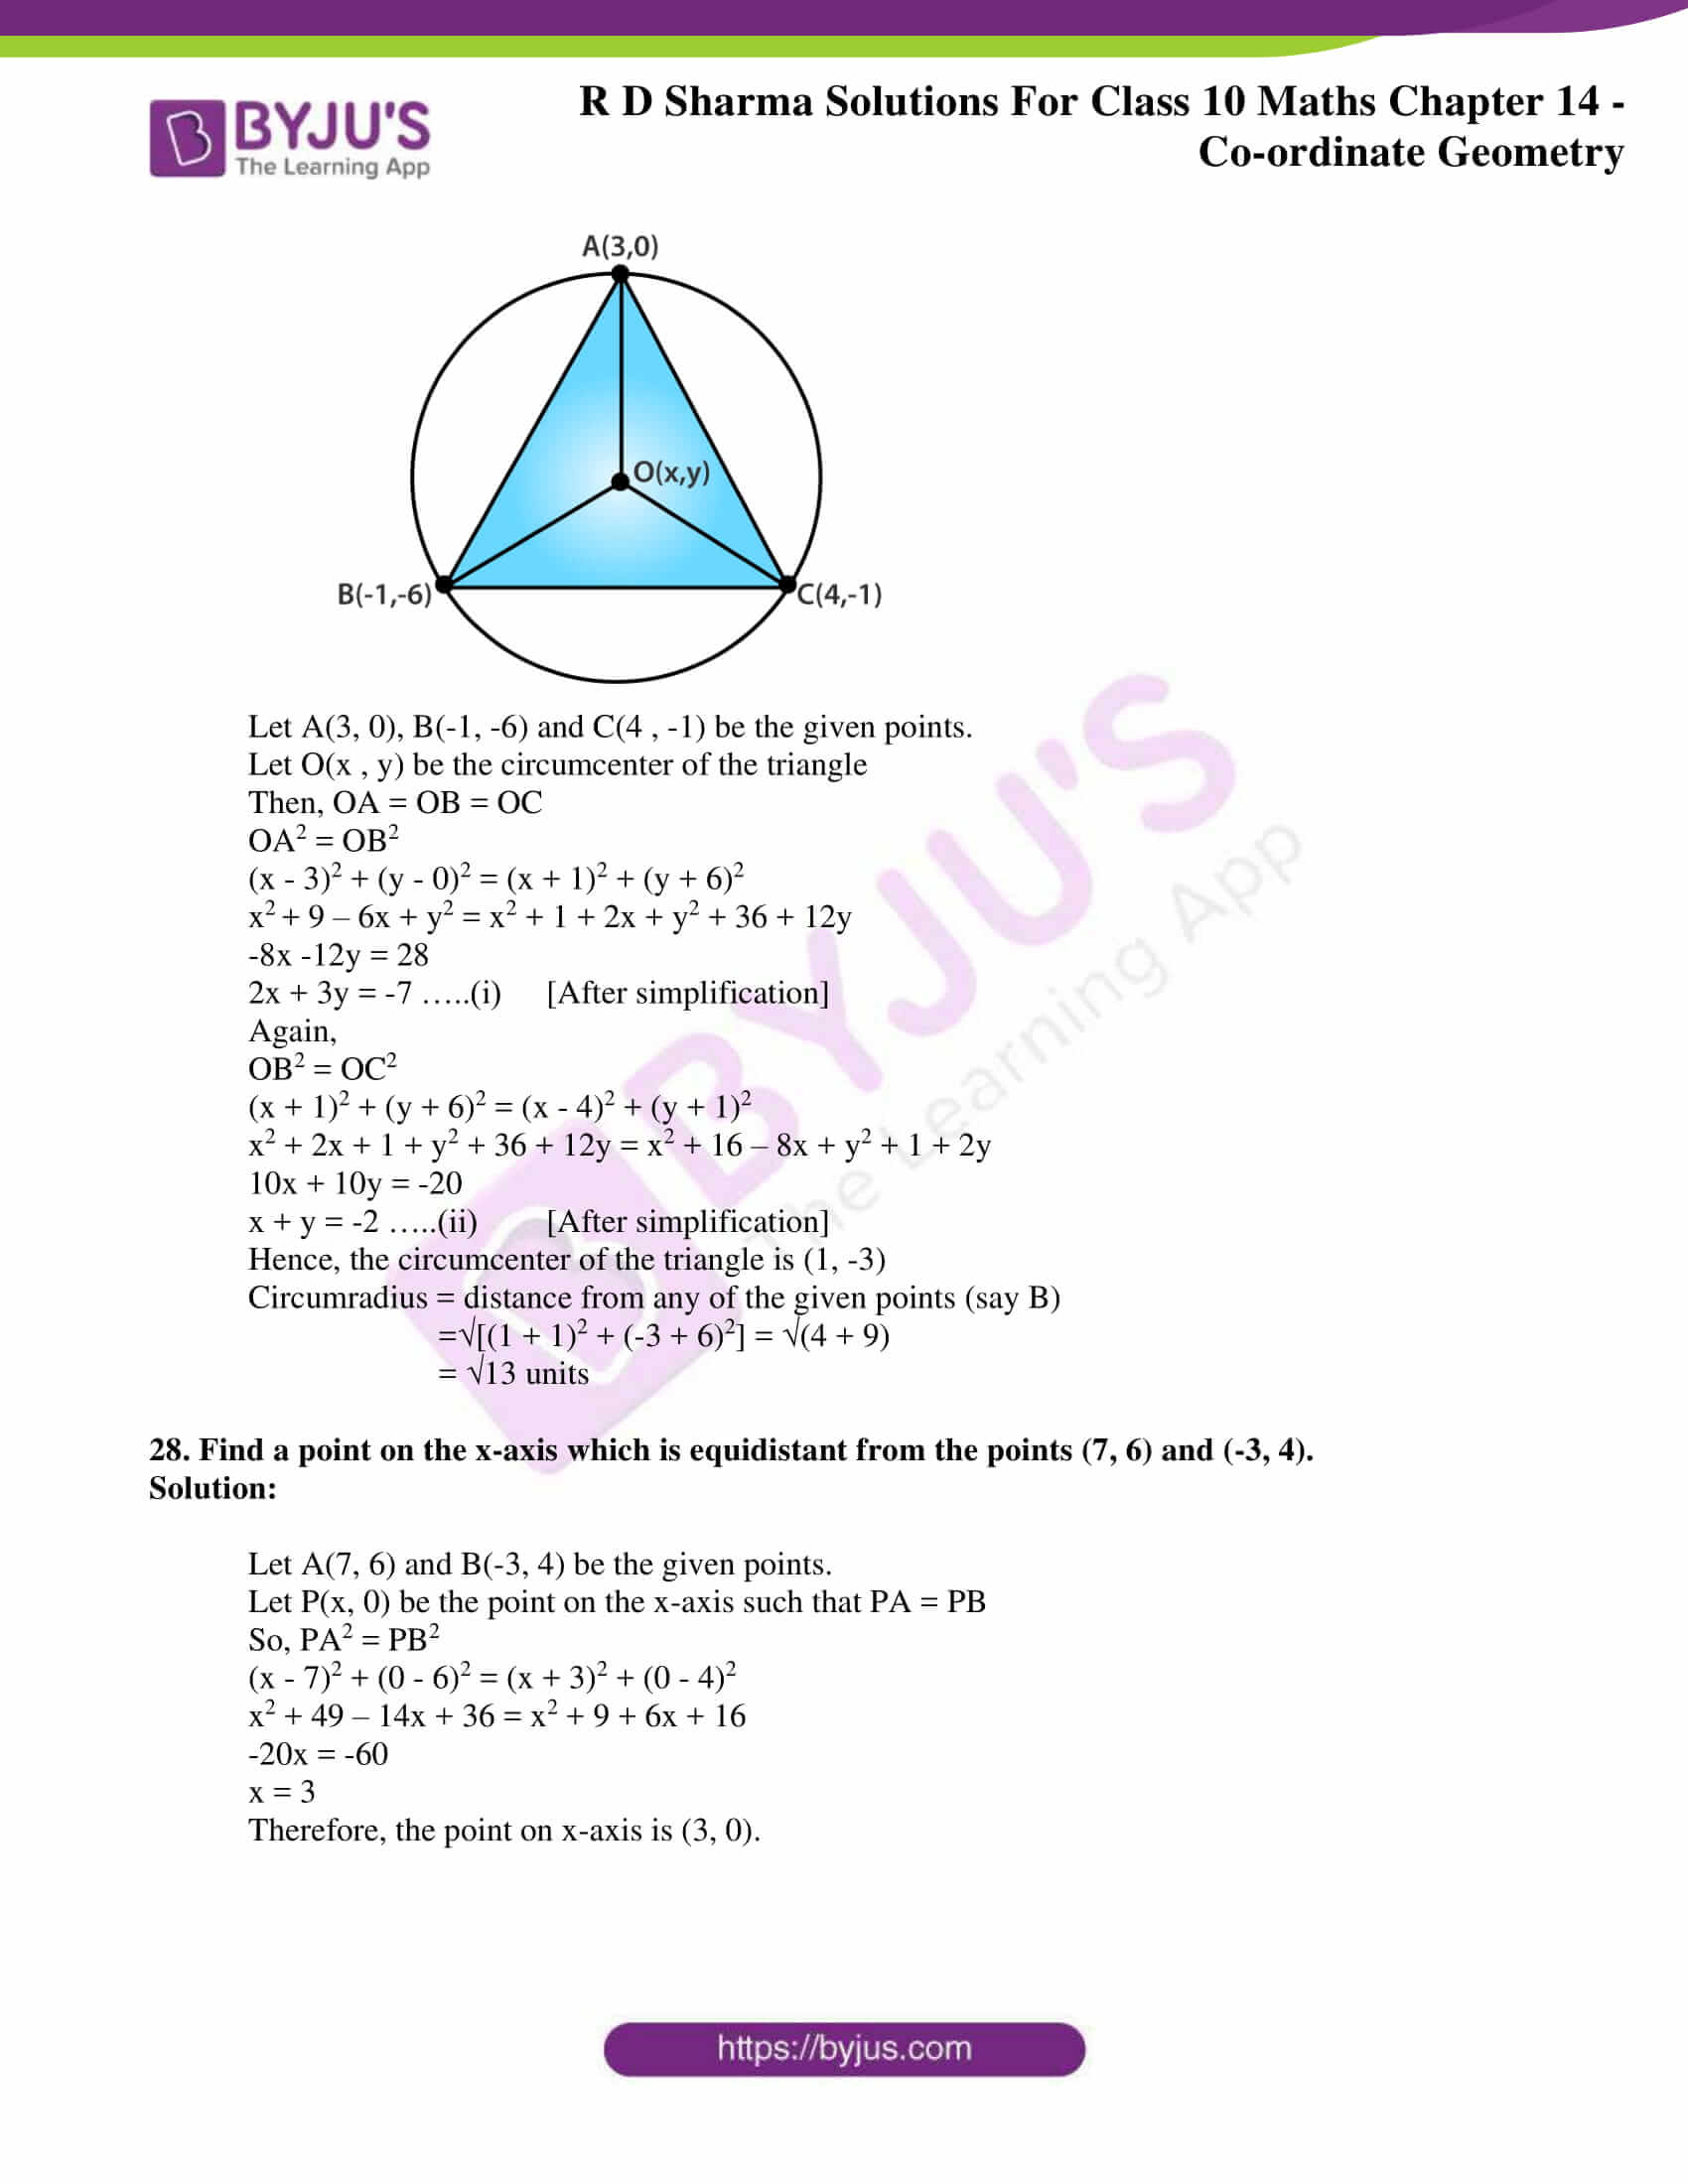 rd sharma solutions class 10 chapter 14 exercise 2